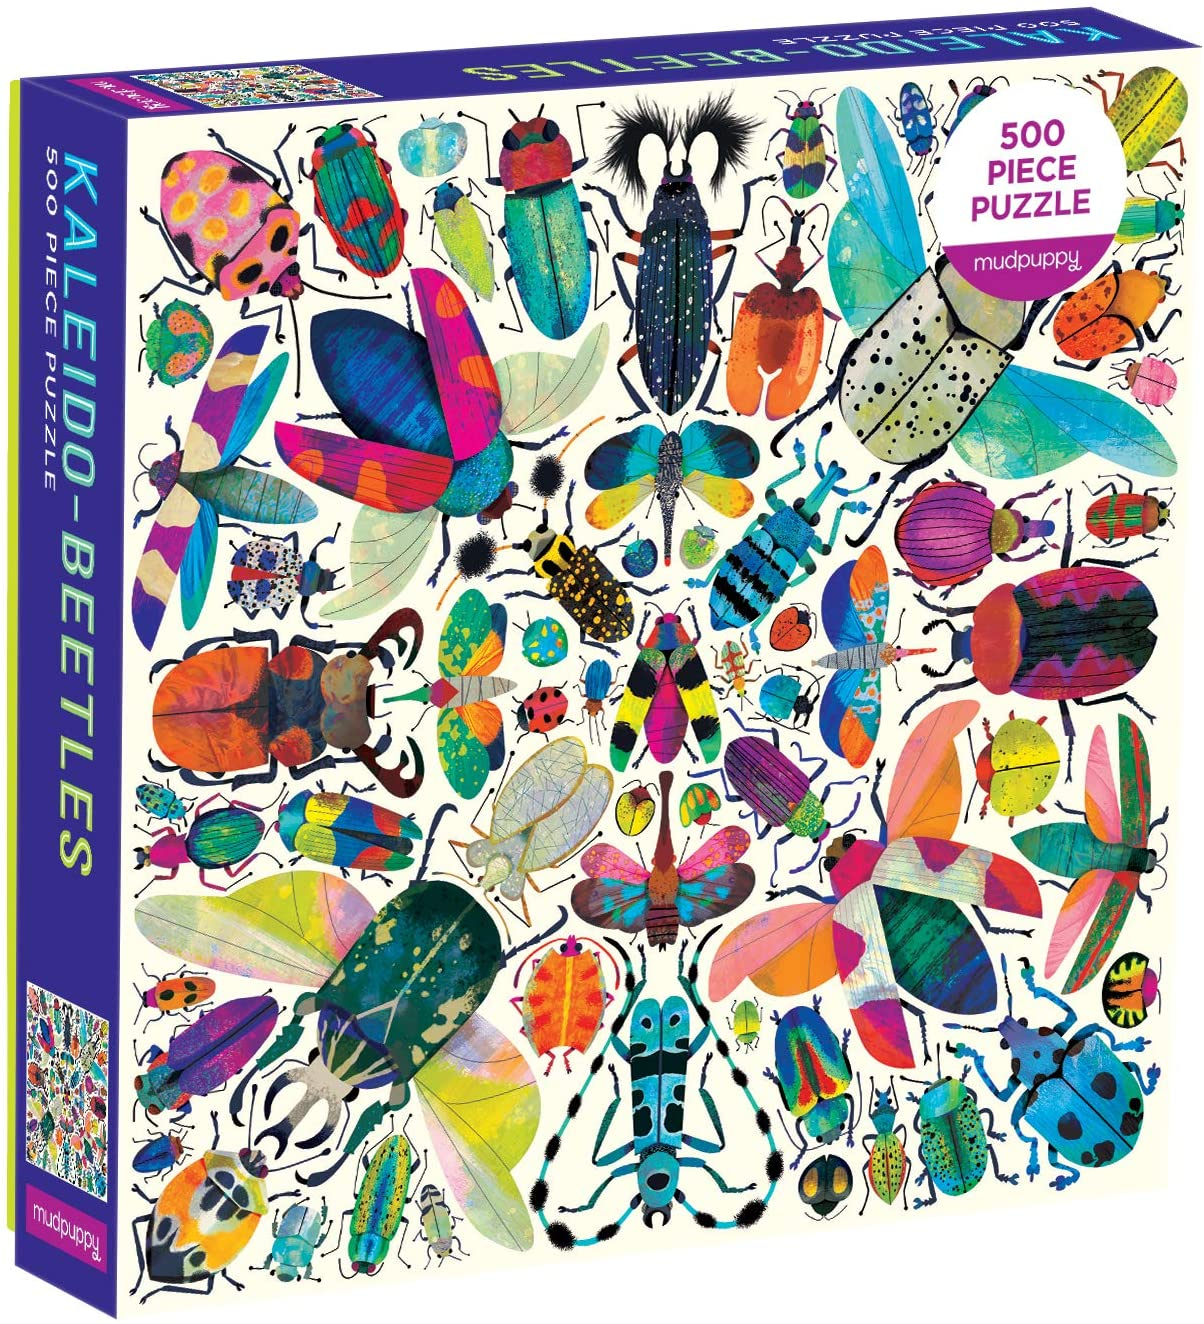 Kaleido Beetles 500pc Family Jigsaw Puzzle by Mudpuppy